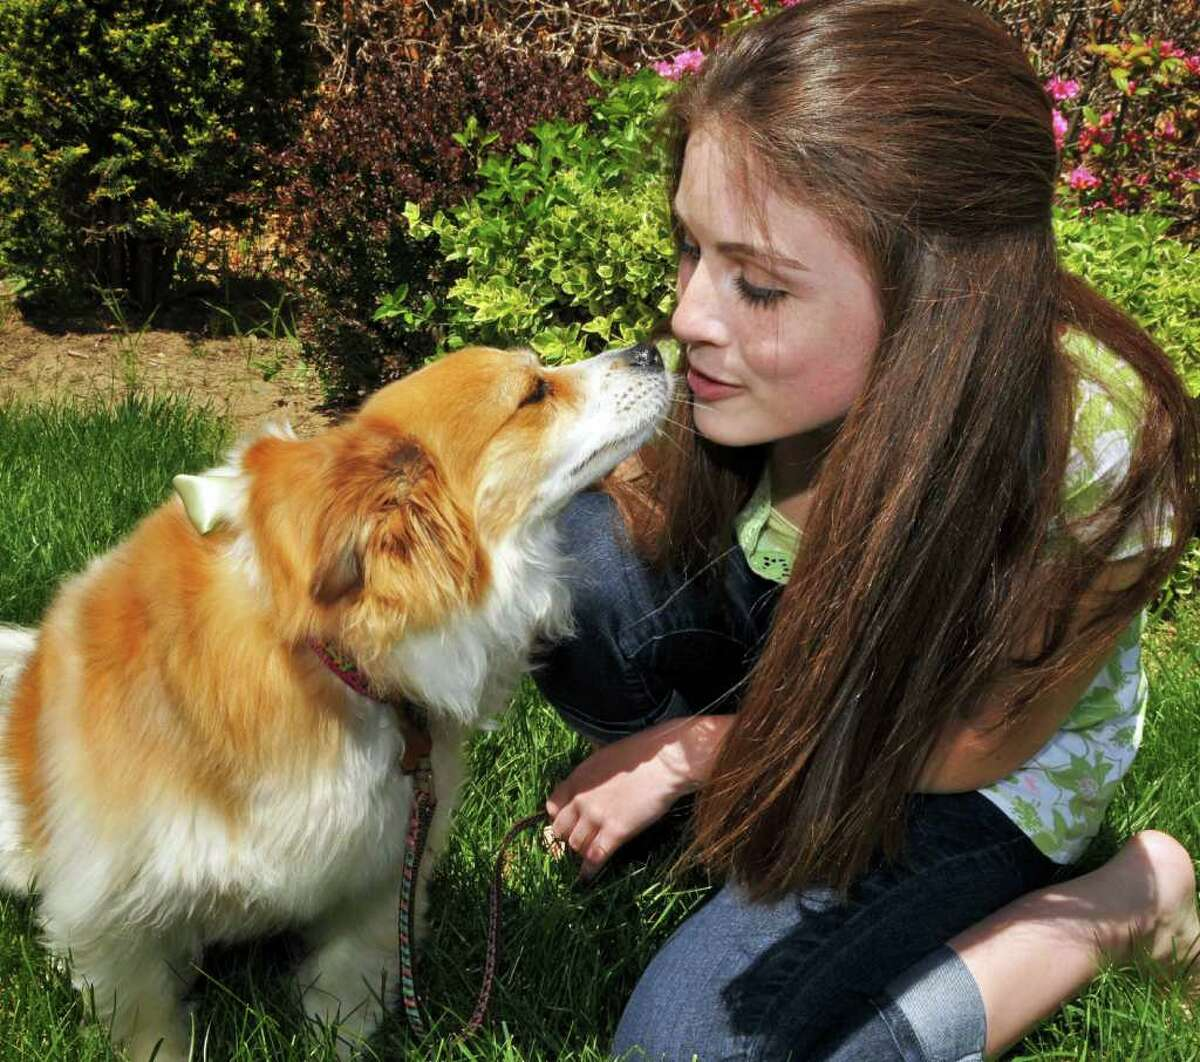 Allison Accettella, 15, a high school student recovering from Lyme disease, with her dog